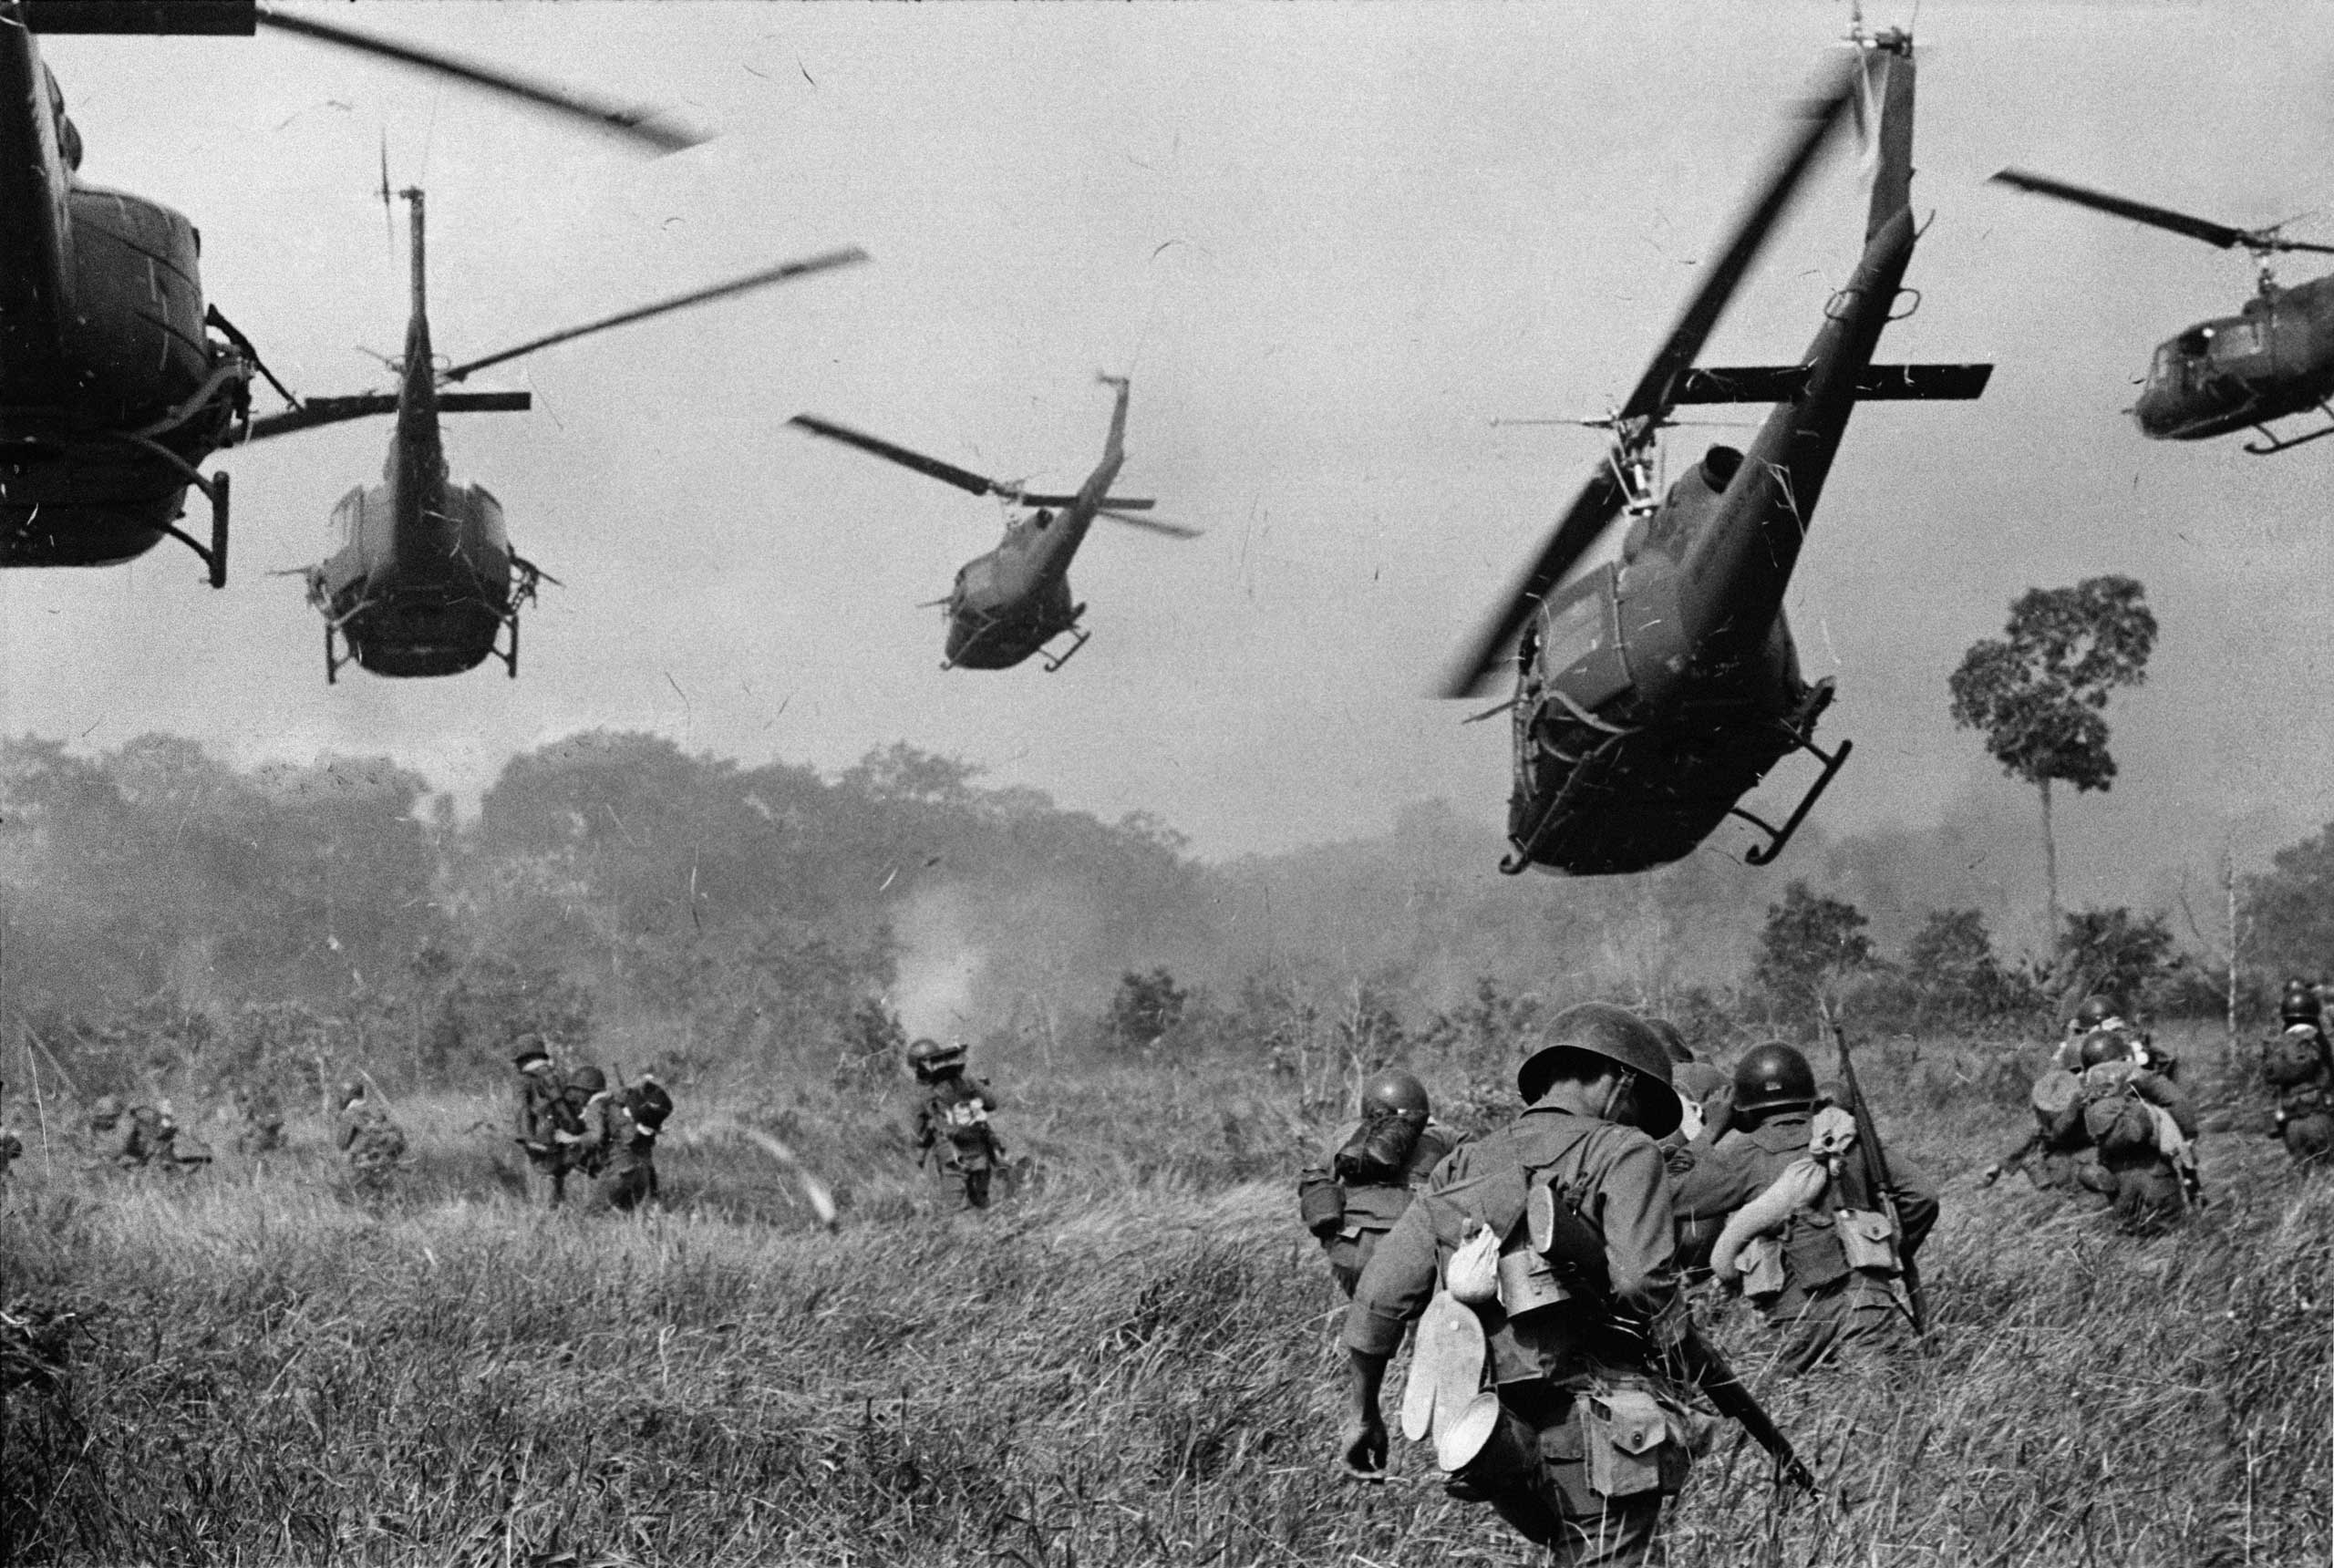 Hovering U.S. Army helicopters pour machine gun fire into the tree line to cover the advance of South Vietnamese ground troops in an attack on a Viet Cong camp 18 miles north of Tay Ninh, northwest of Saigon near the Cambodian border, in March 1965.